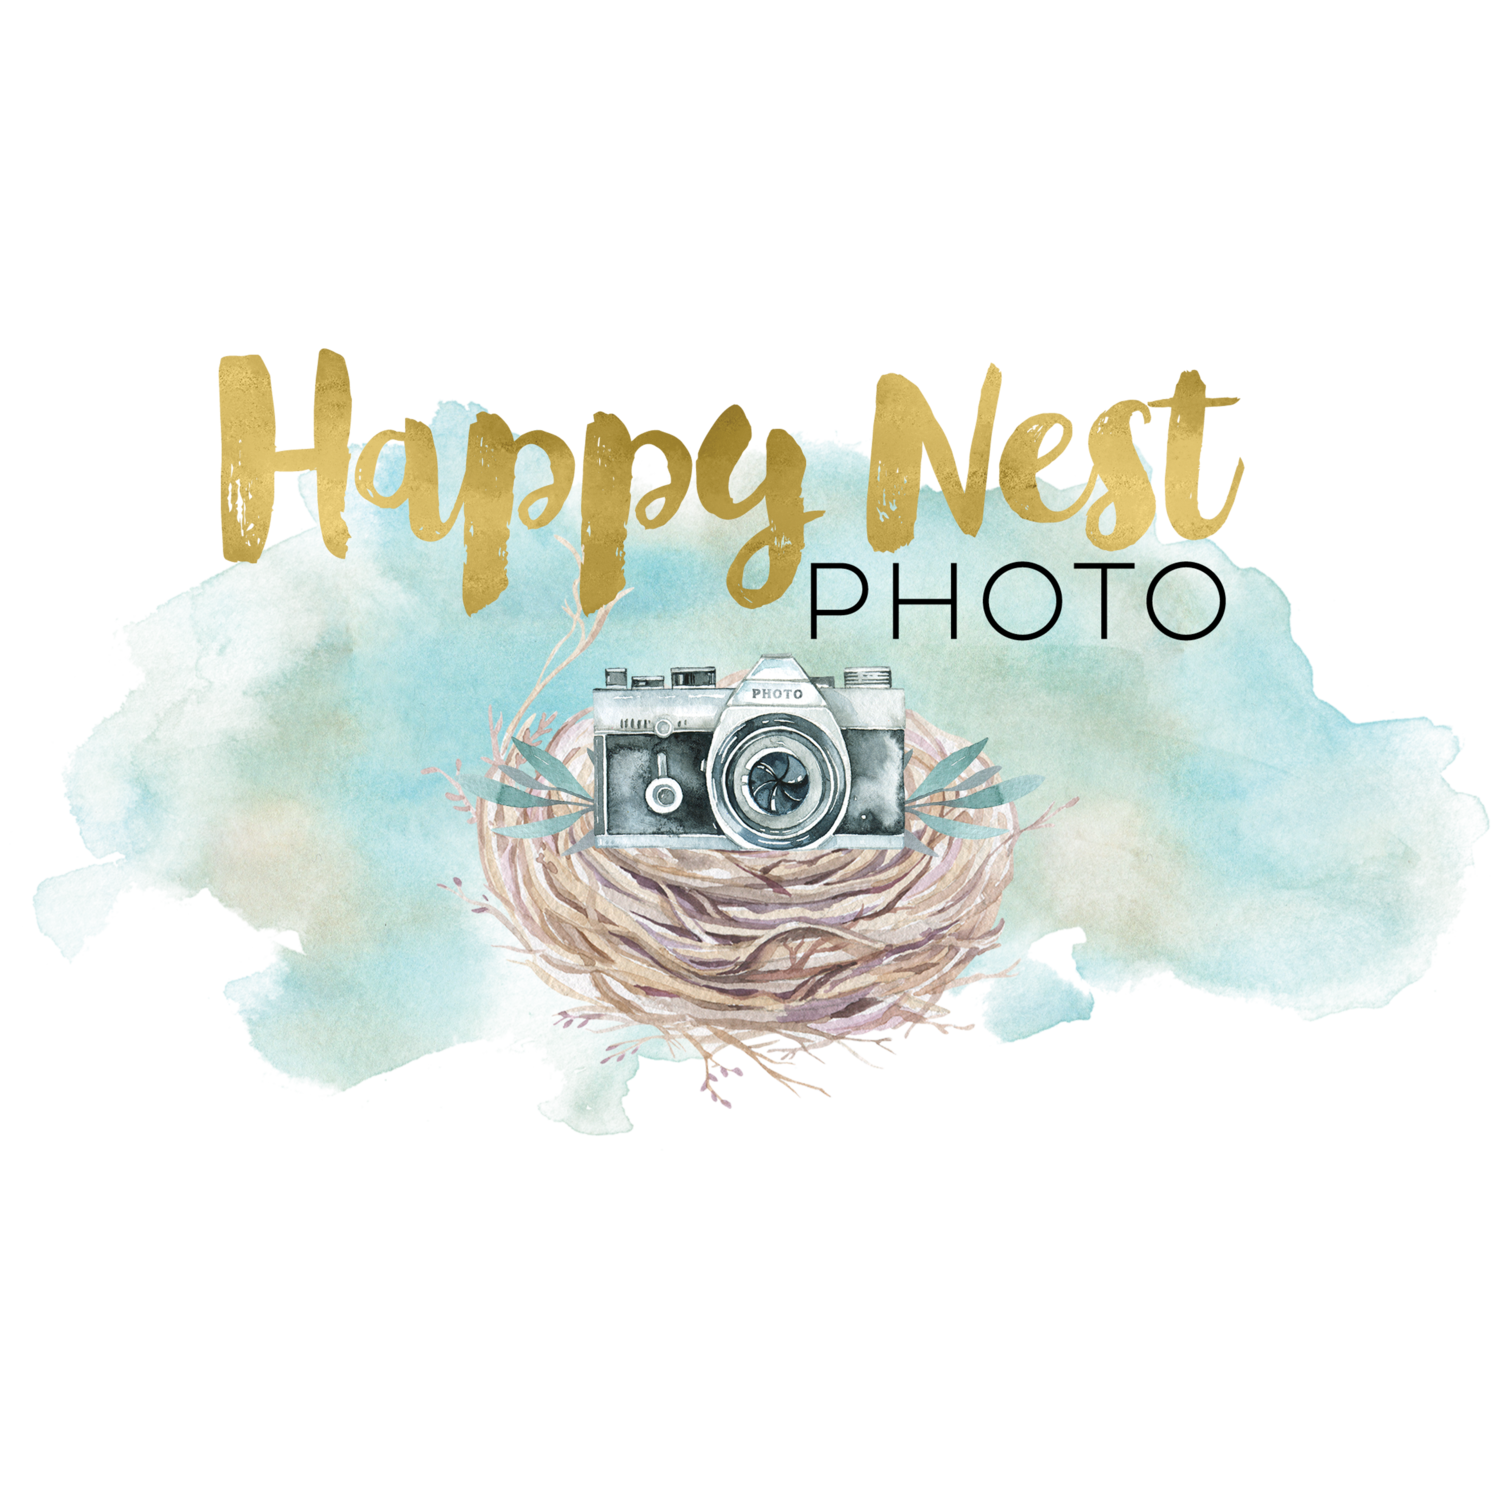 HAPPY NEST PHOTO AUSTIN LIFESTYLE PHOTOGRAPHY